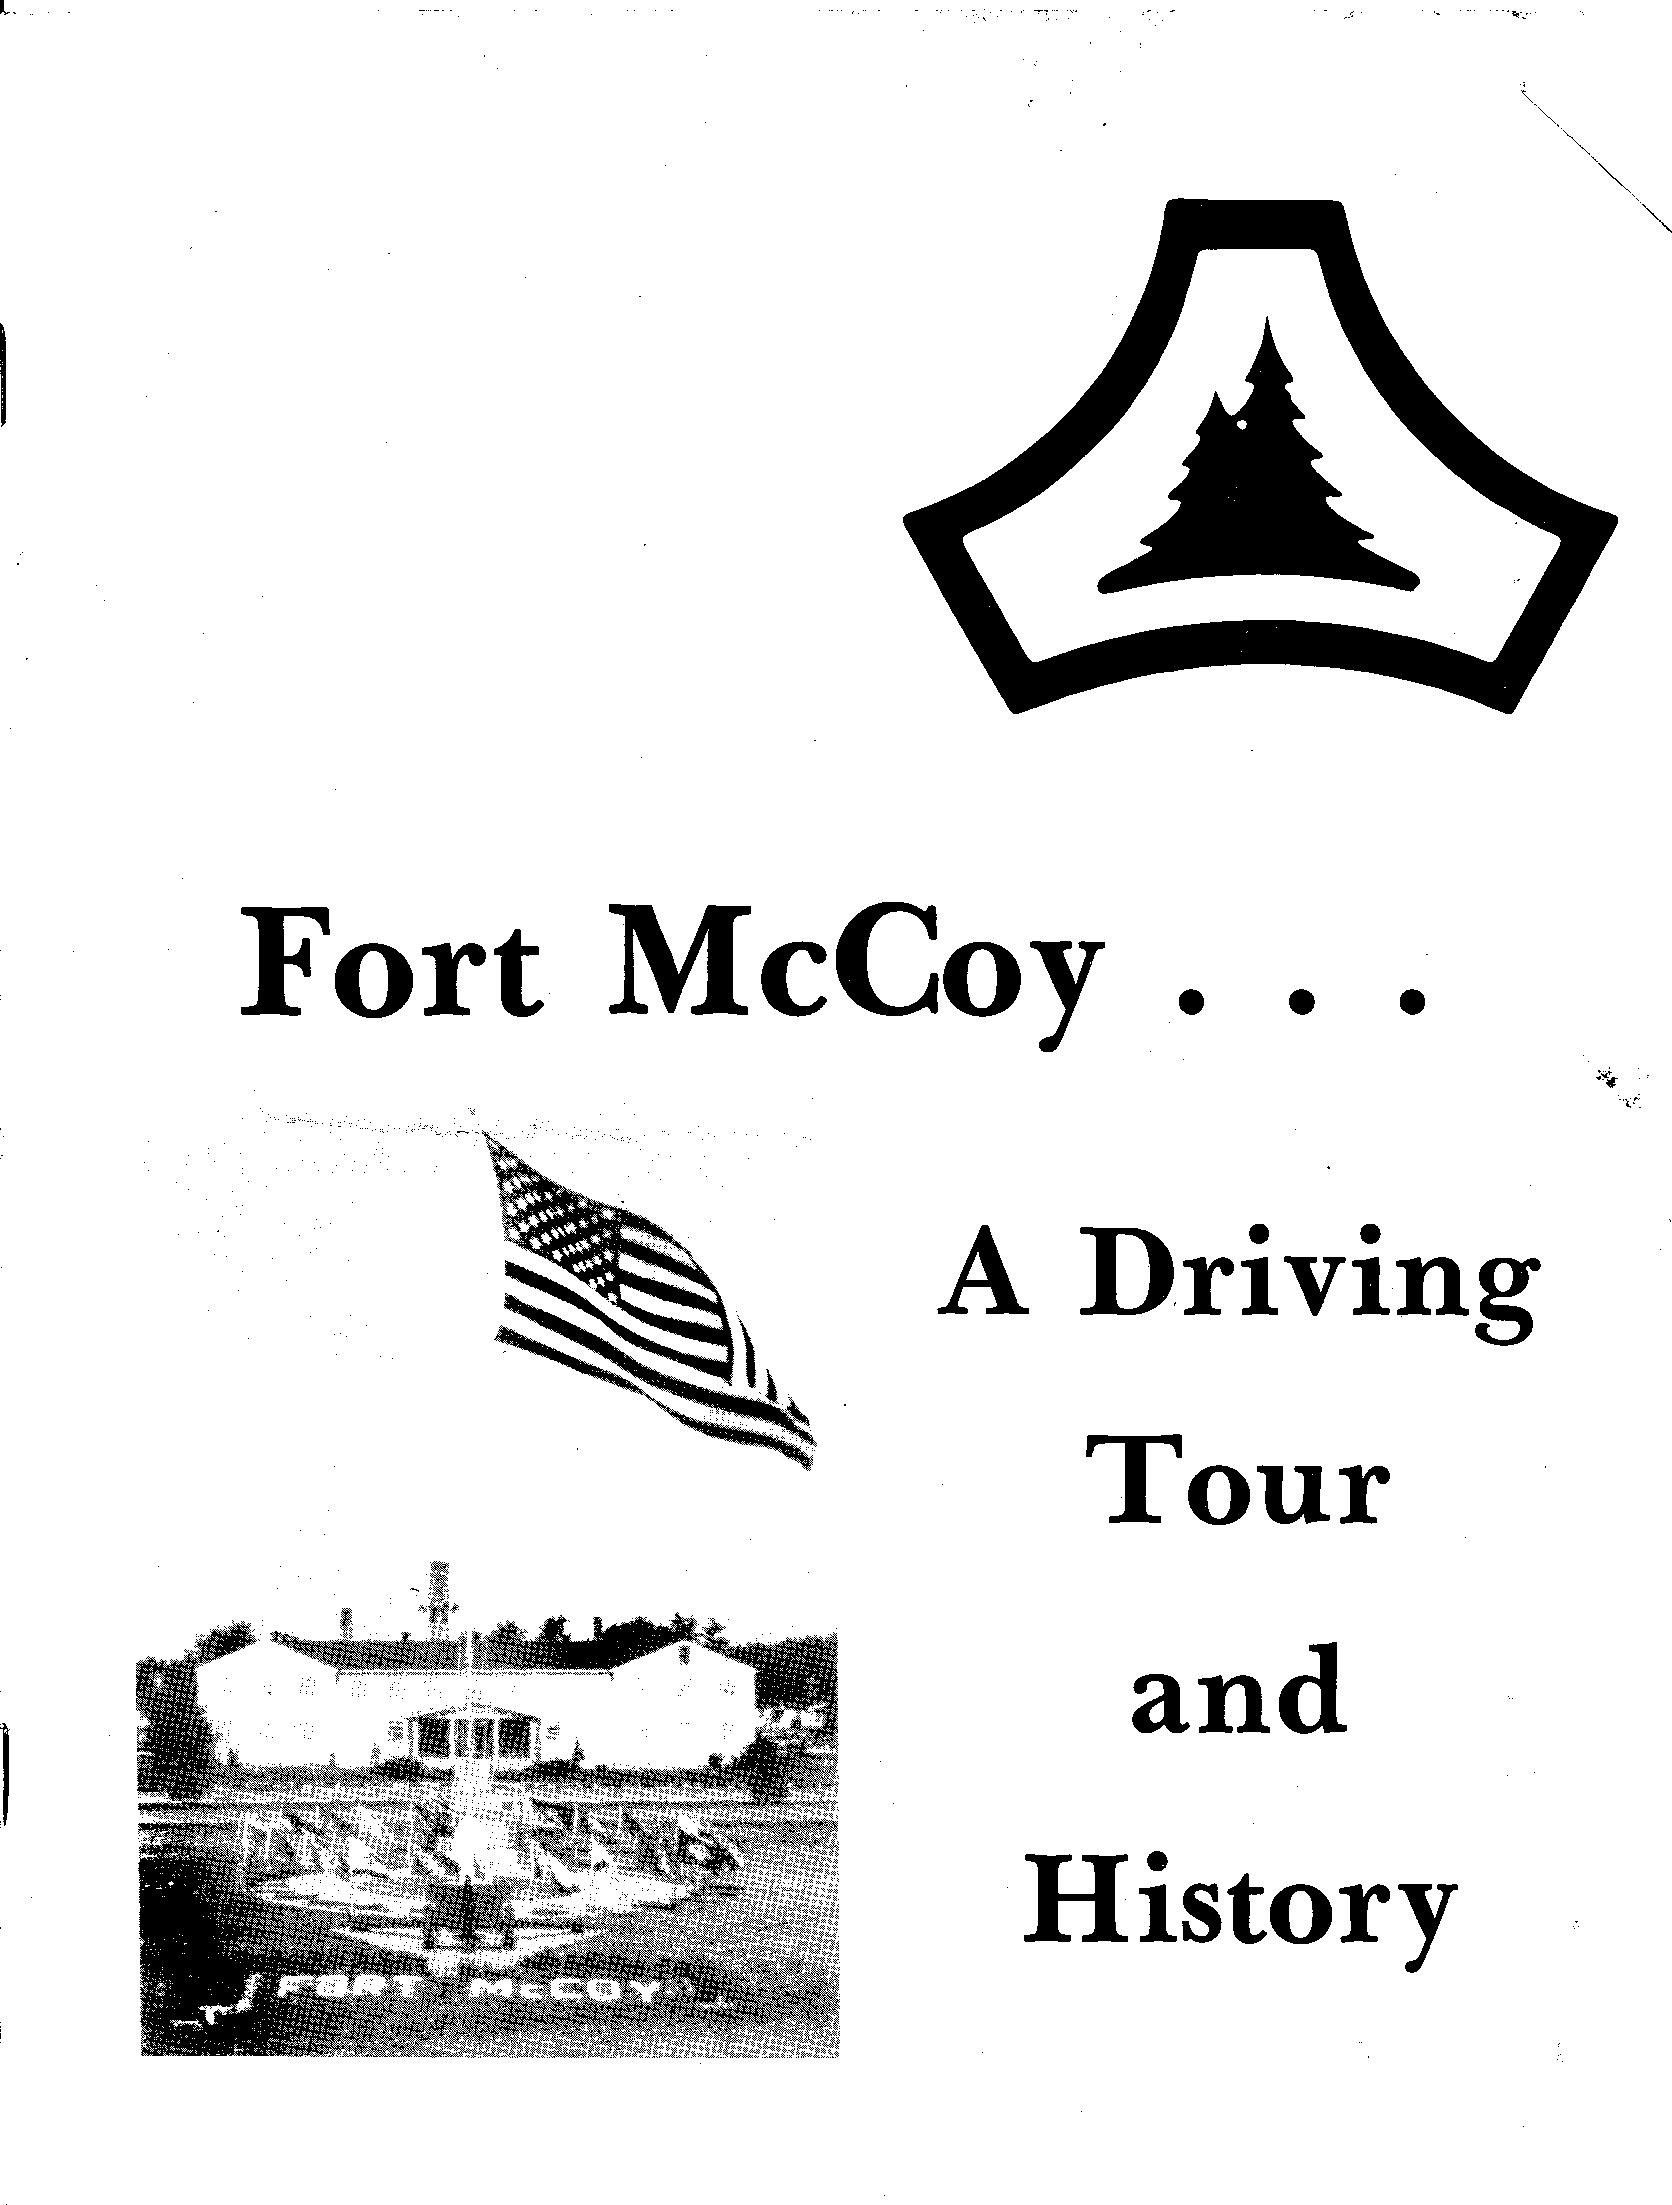 During World War II, Camp McCoy was used as a training